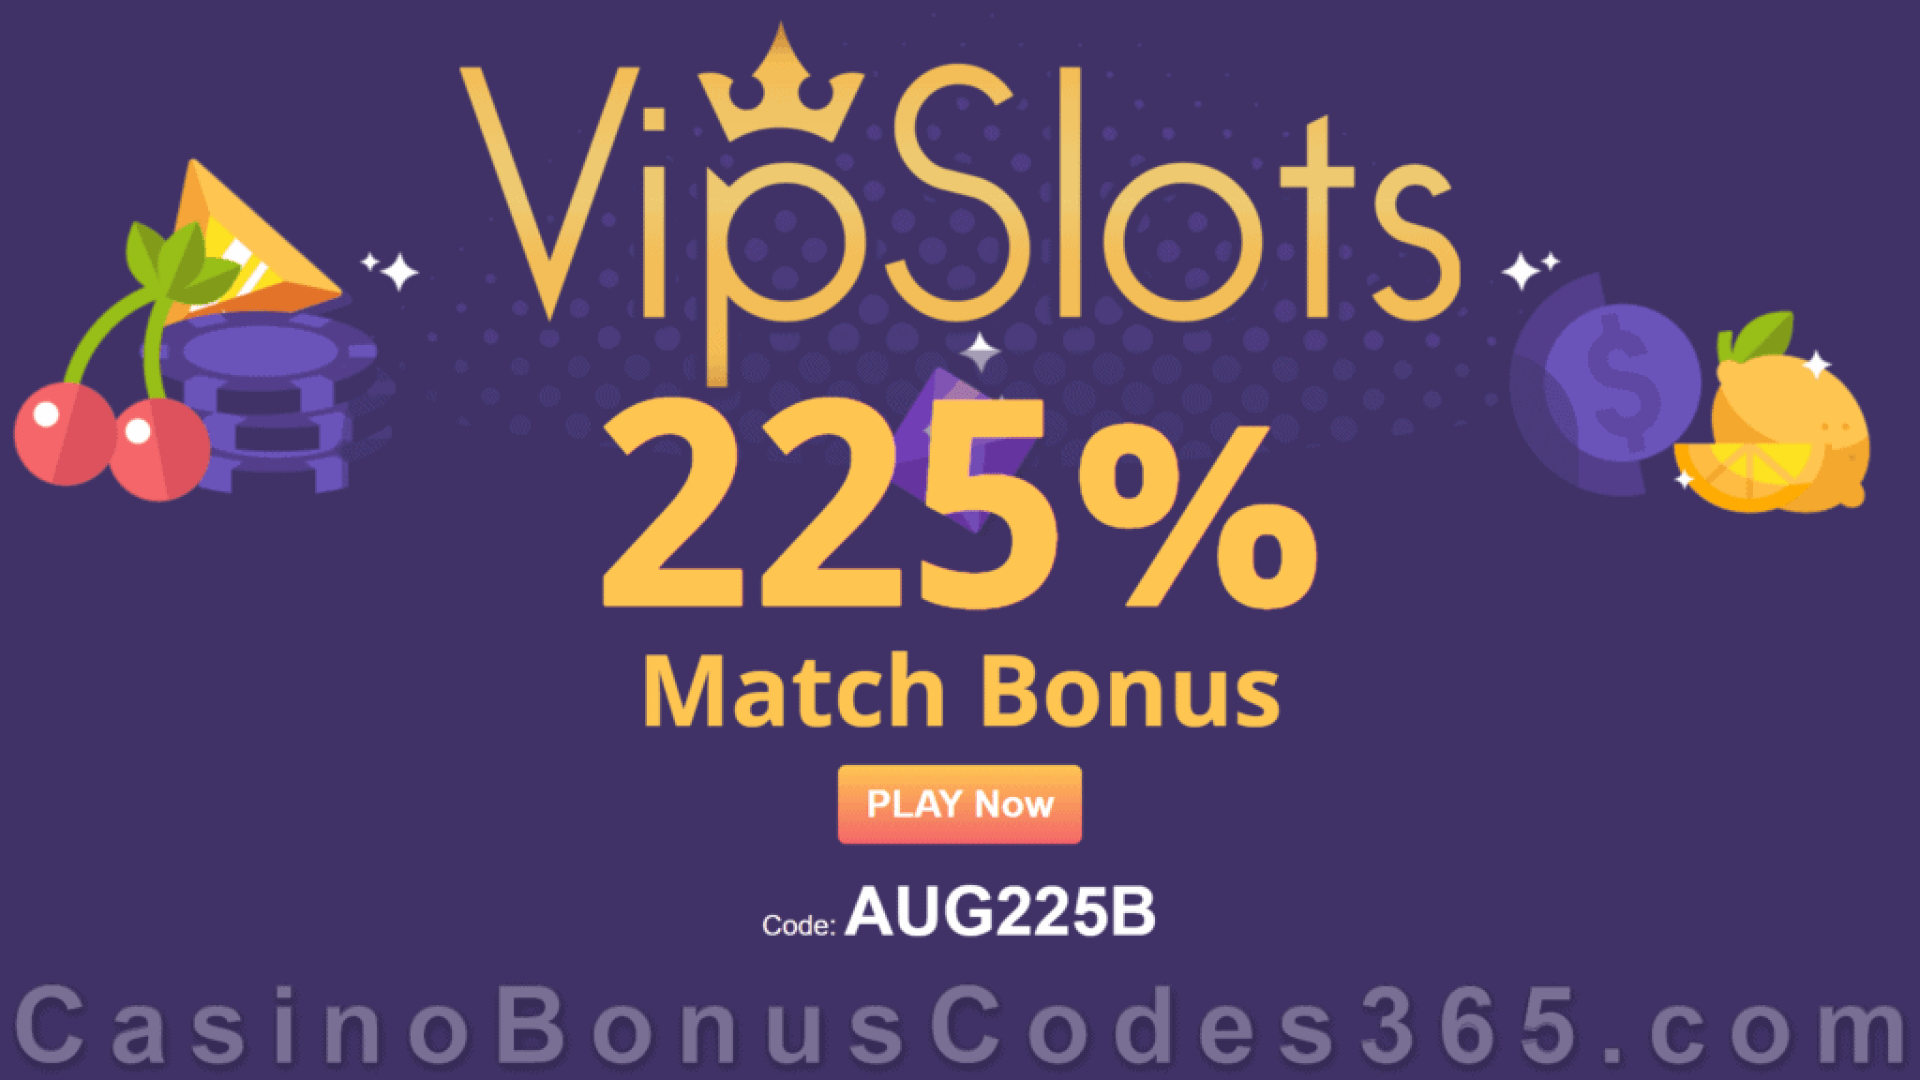 VipSlots Casino August 225% Match Bonus Special Deal